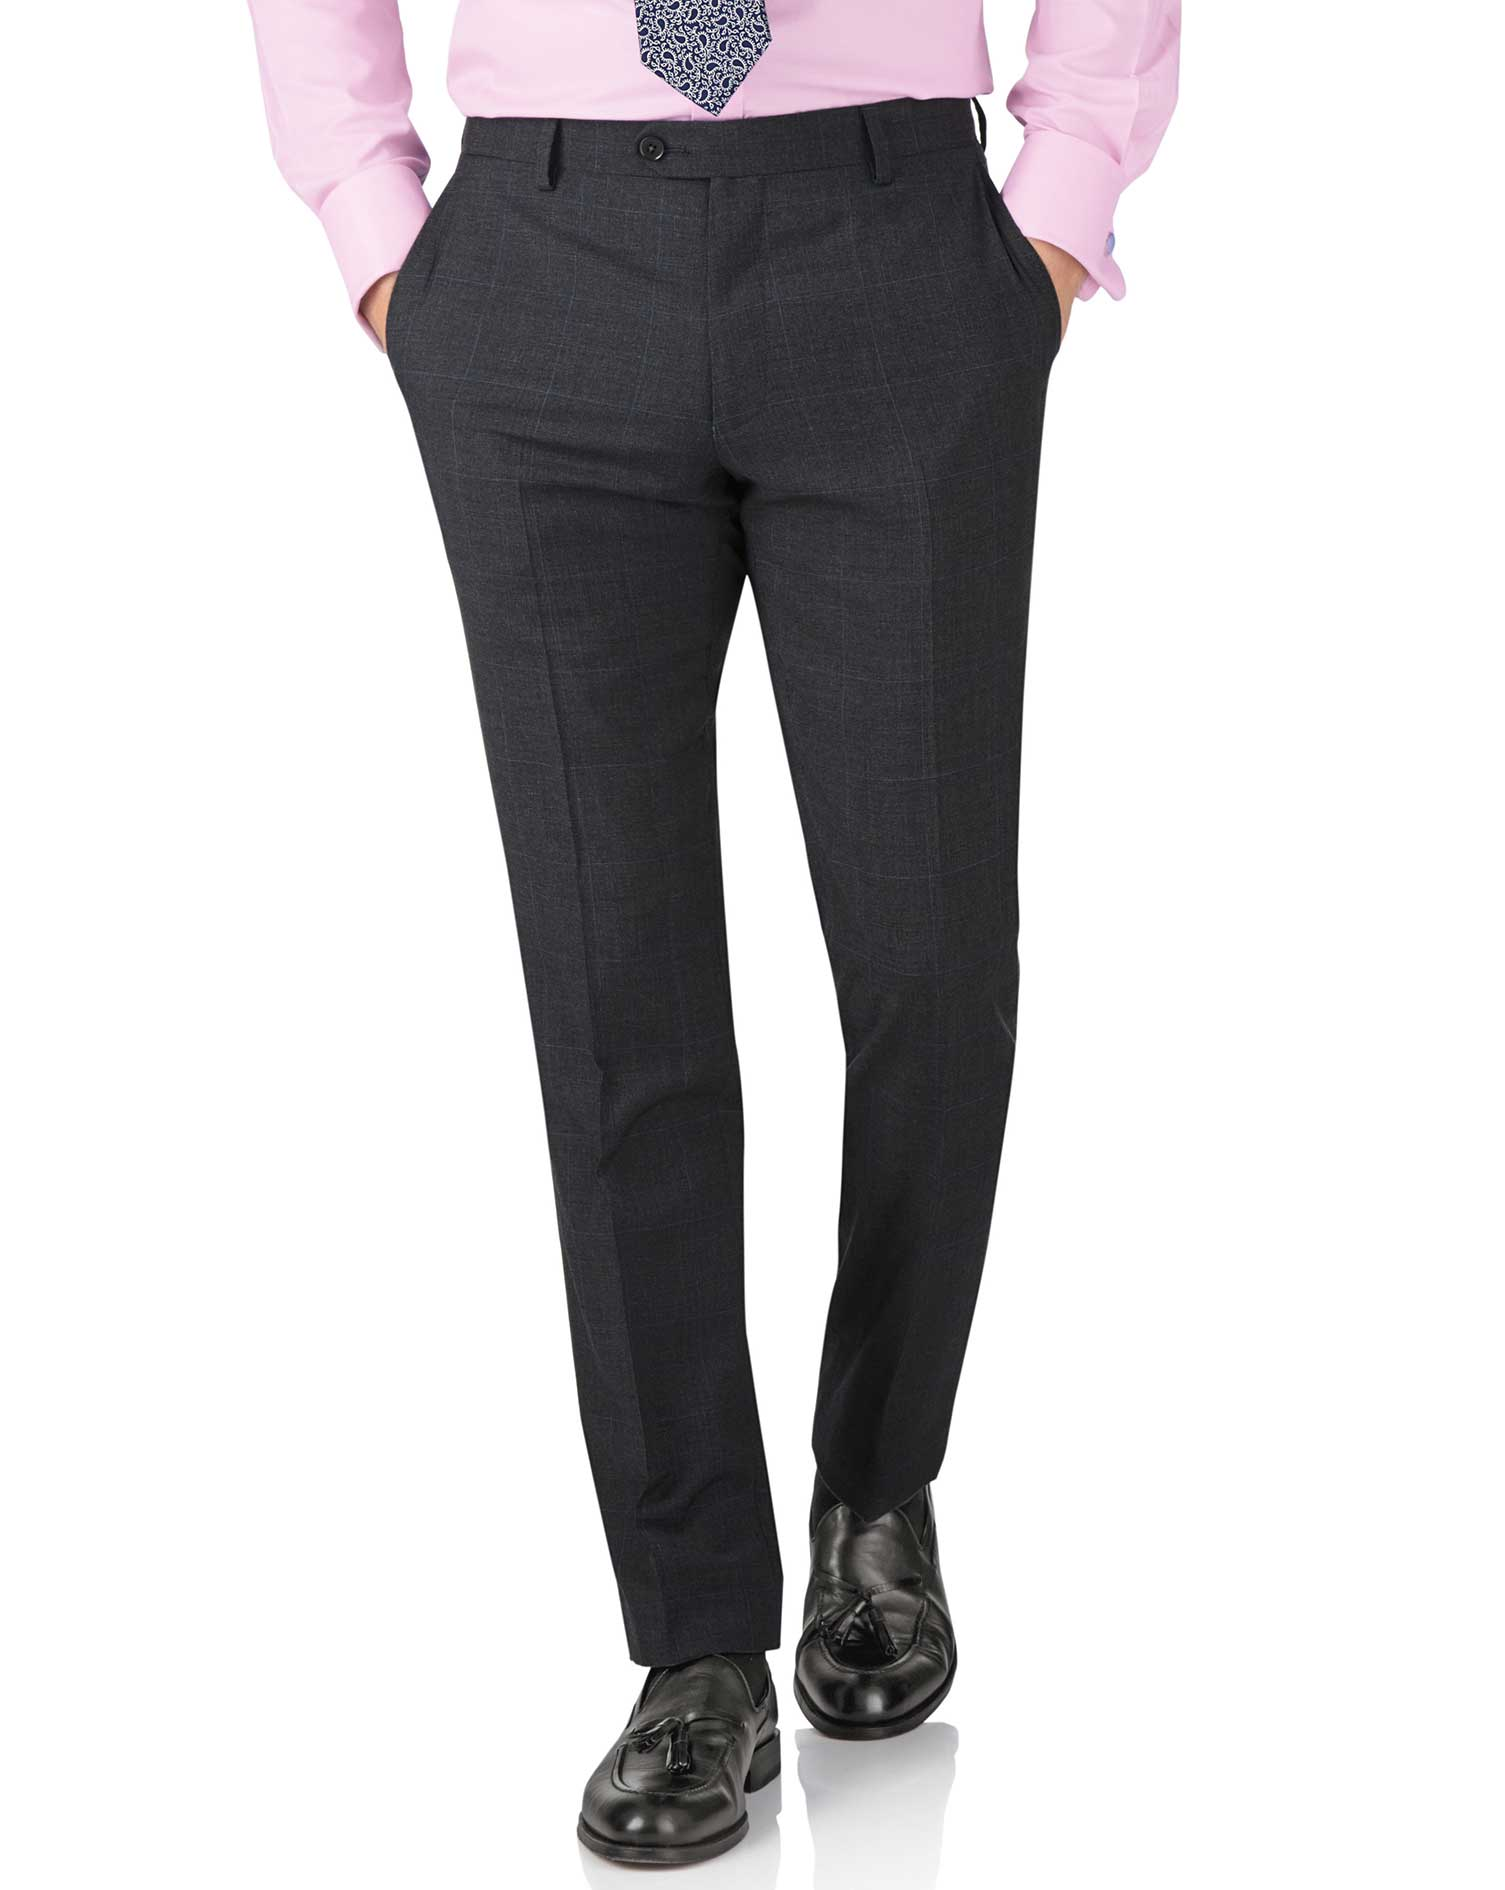 Charcoal Slim Fit Sharkskin Travel Suit Trouser Size W42 L38 by Charles Tyrwhitt